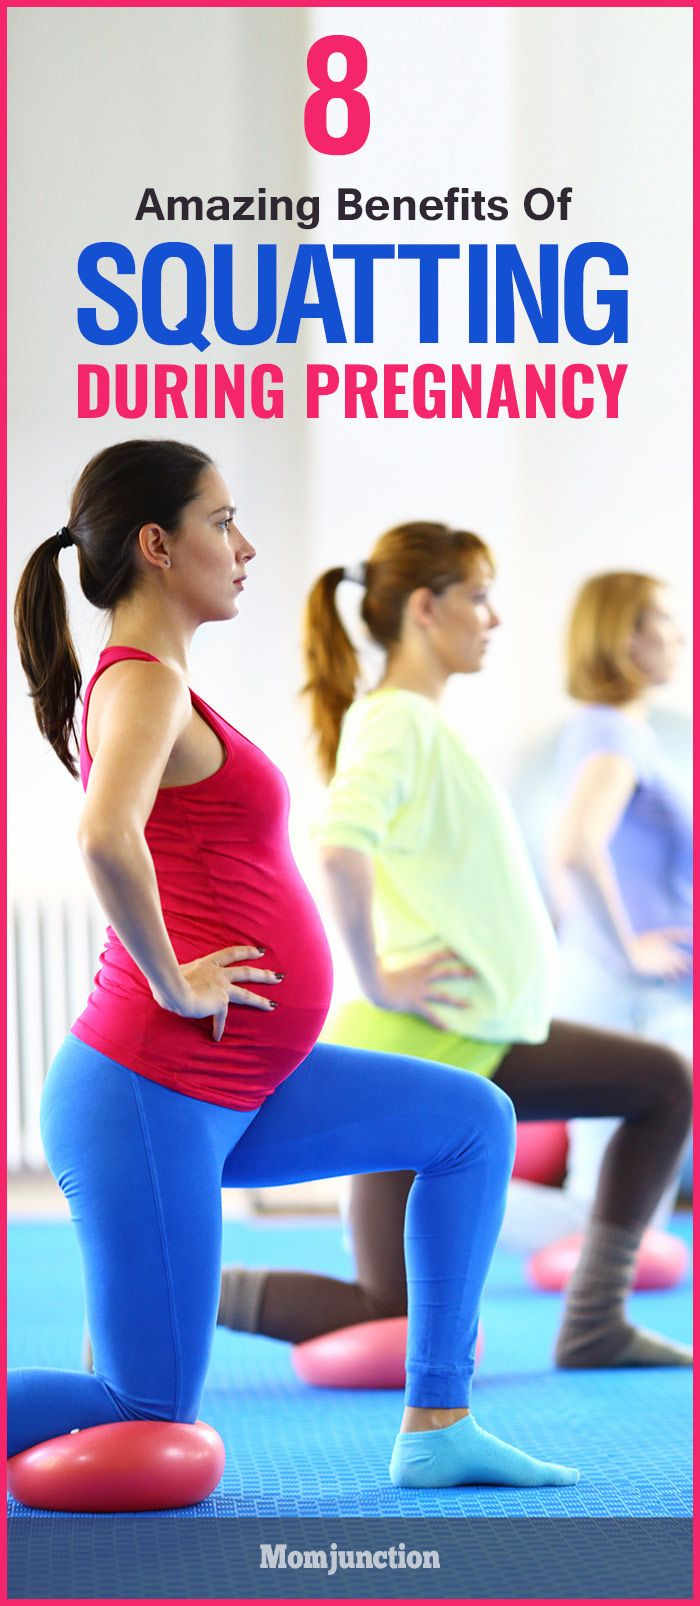 Are you pregnant & looking at safe exercises to stay healthy & fit? Performing squats during pregnancy will help you stay sound & prepares the body. Know how